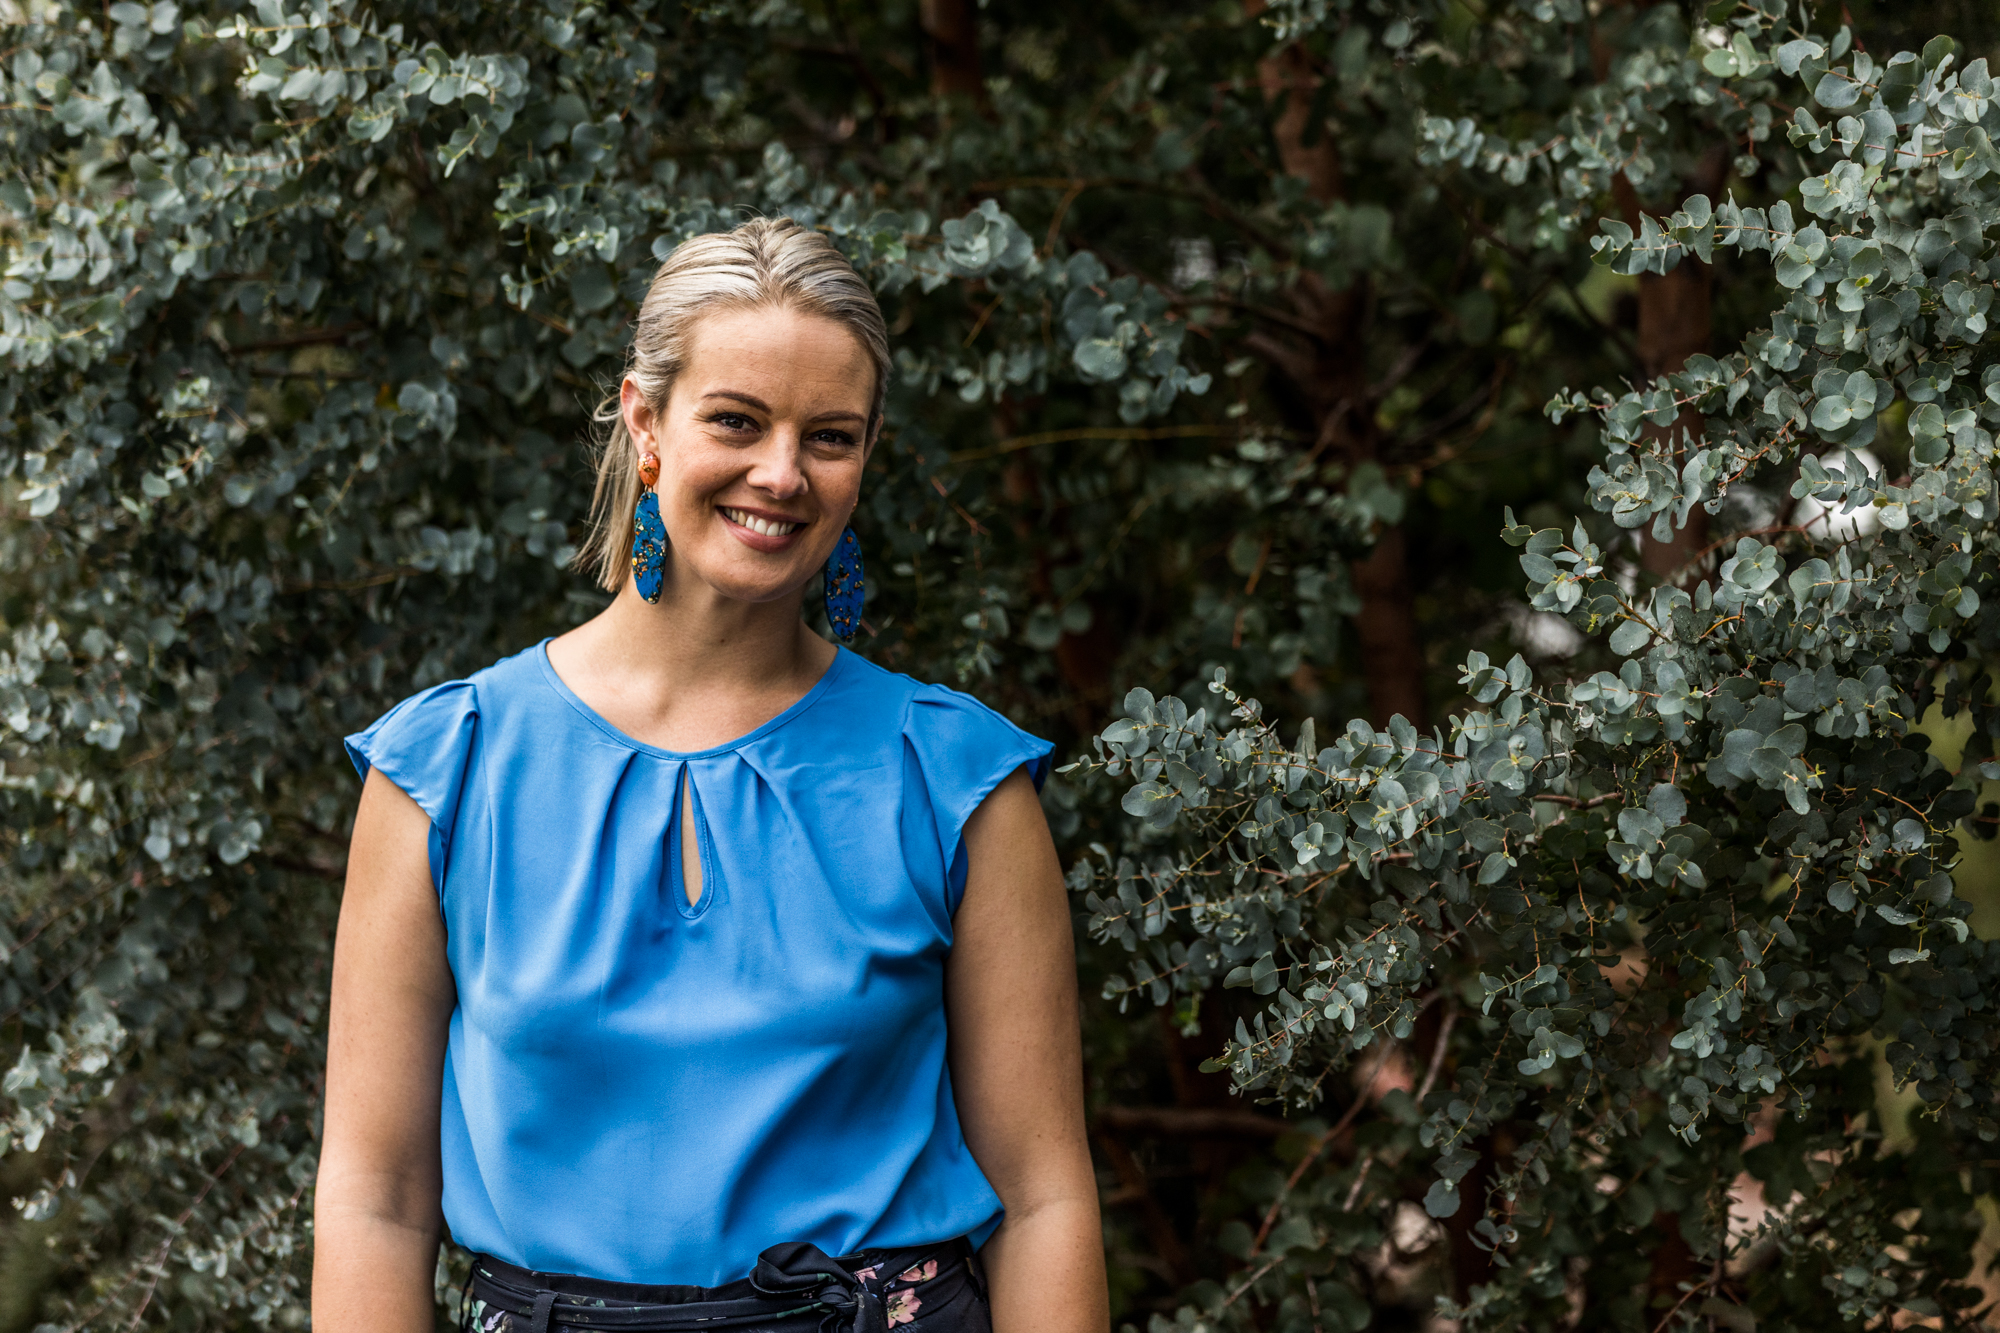 Dr KATE CASHMAN - Rest & Renewal Coach & The Breath Between | Academic